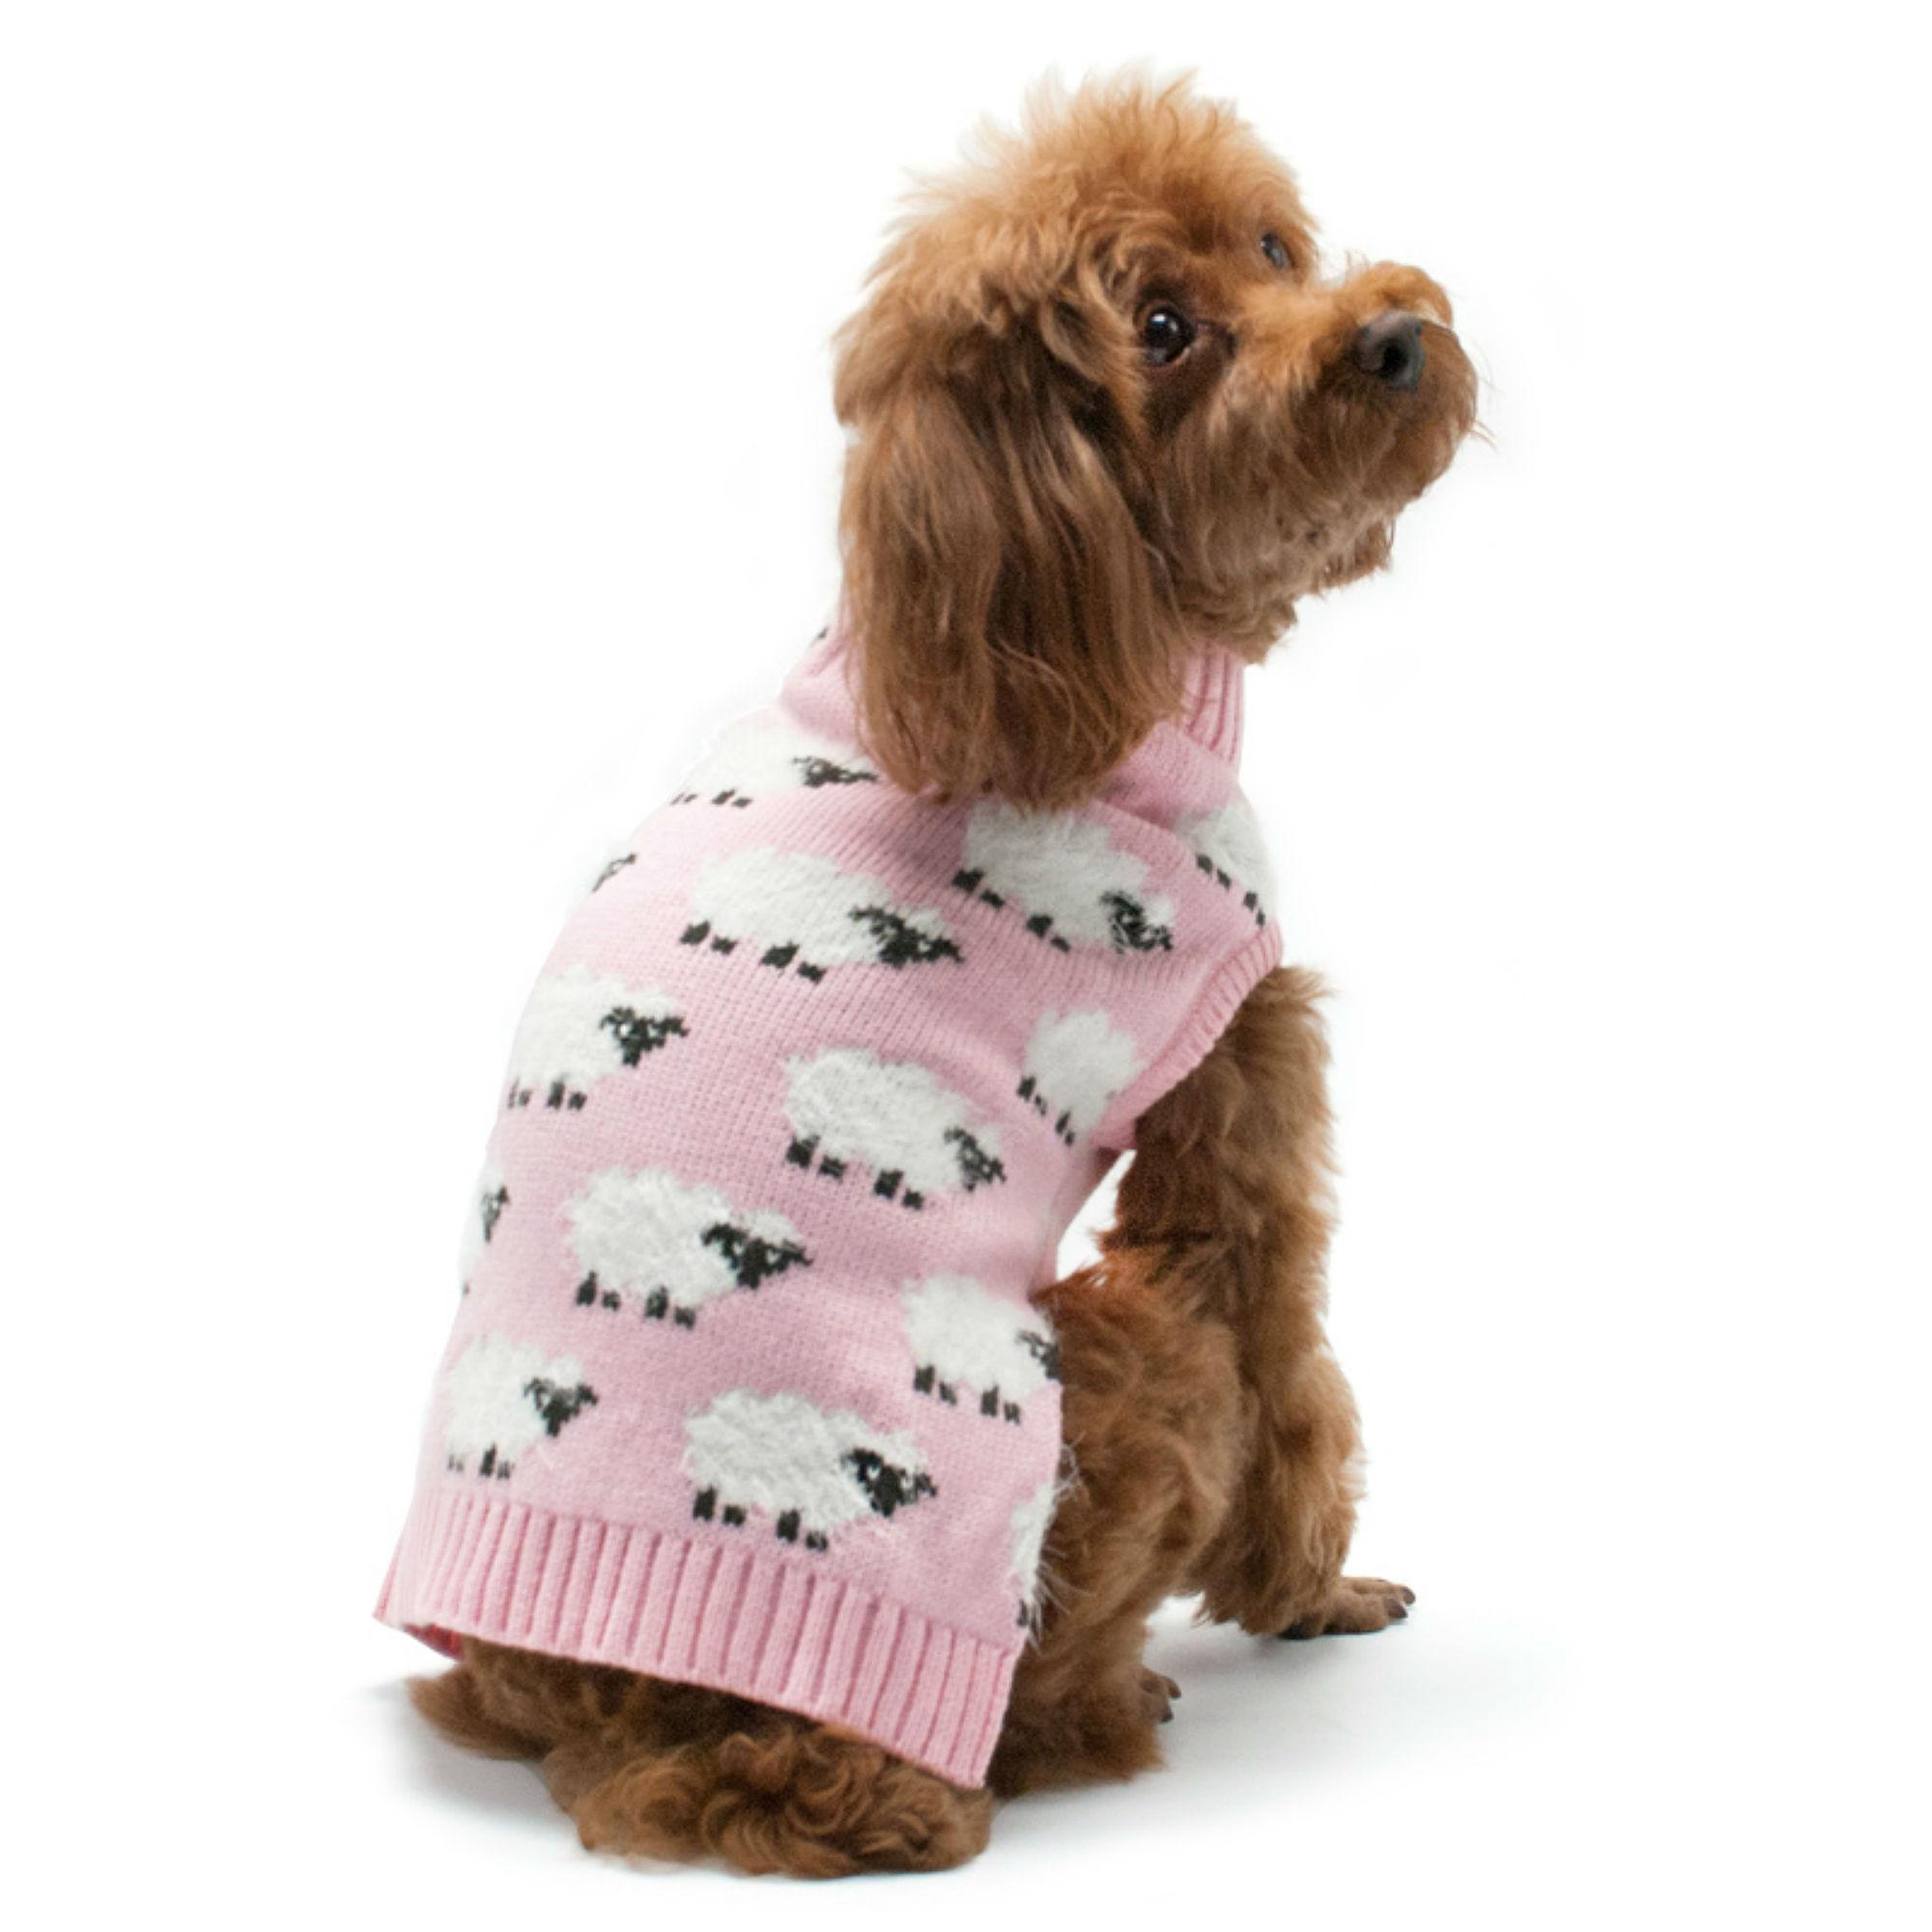 Sheep Dog Sweater by Dogo - Pink